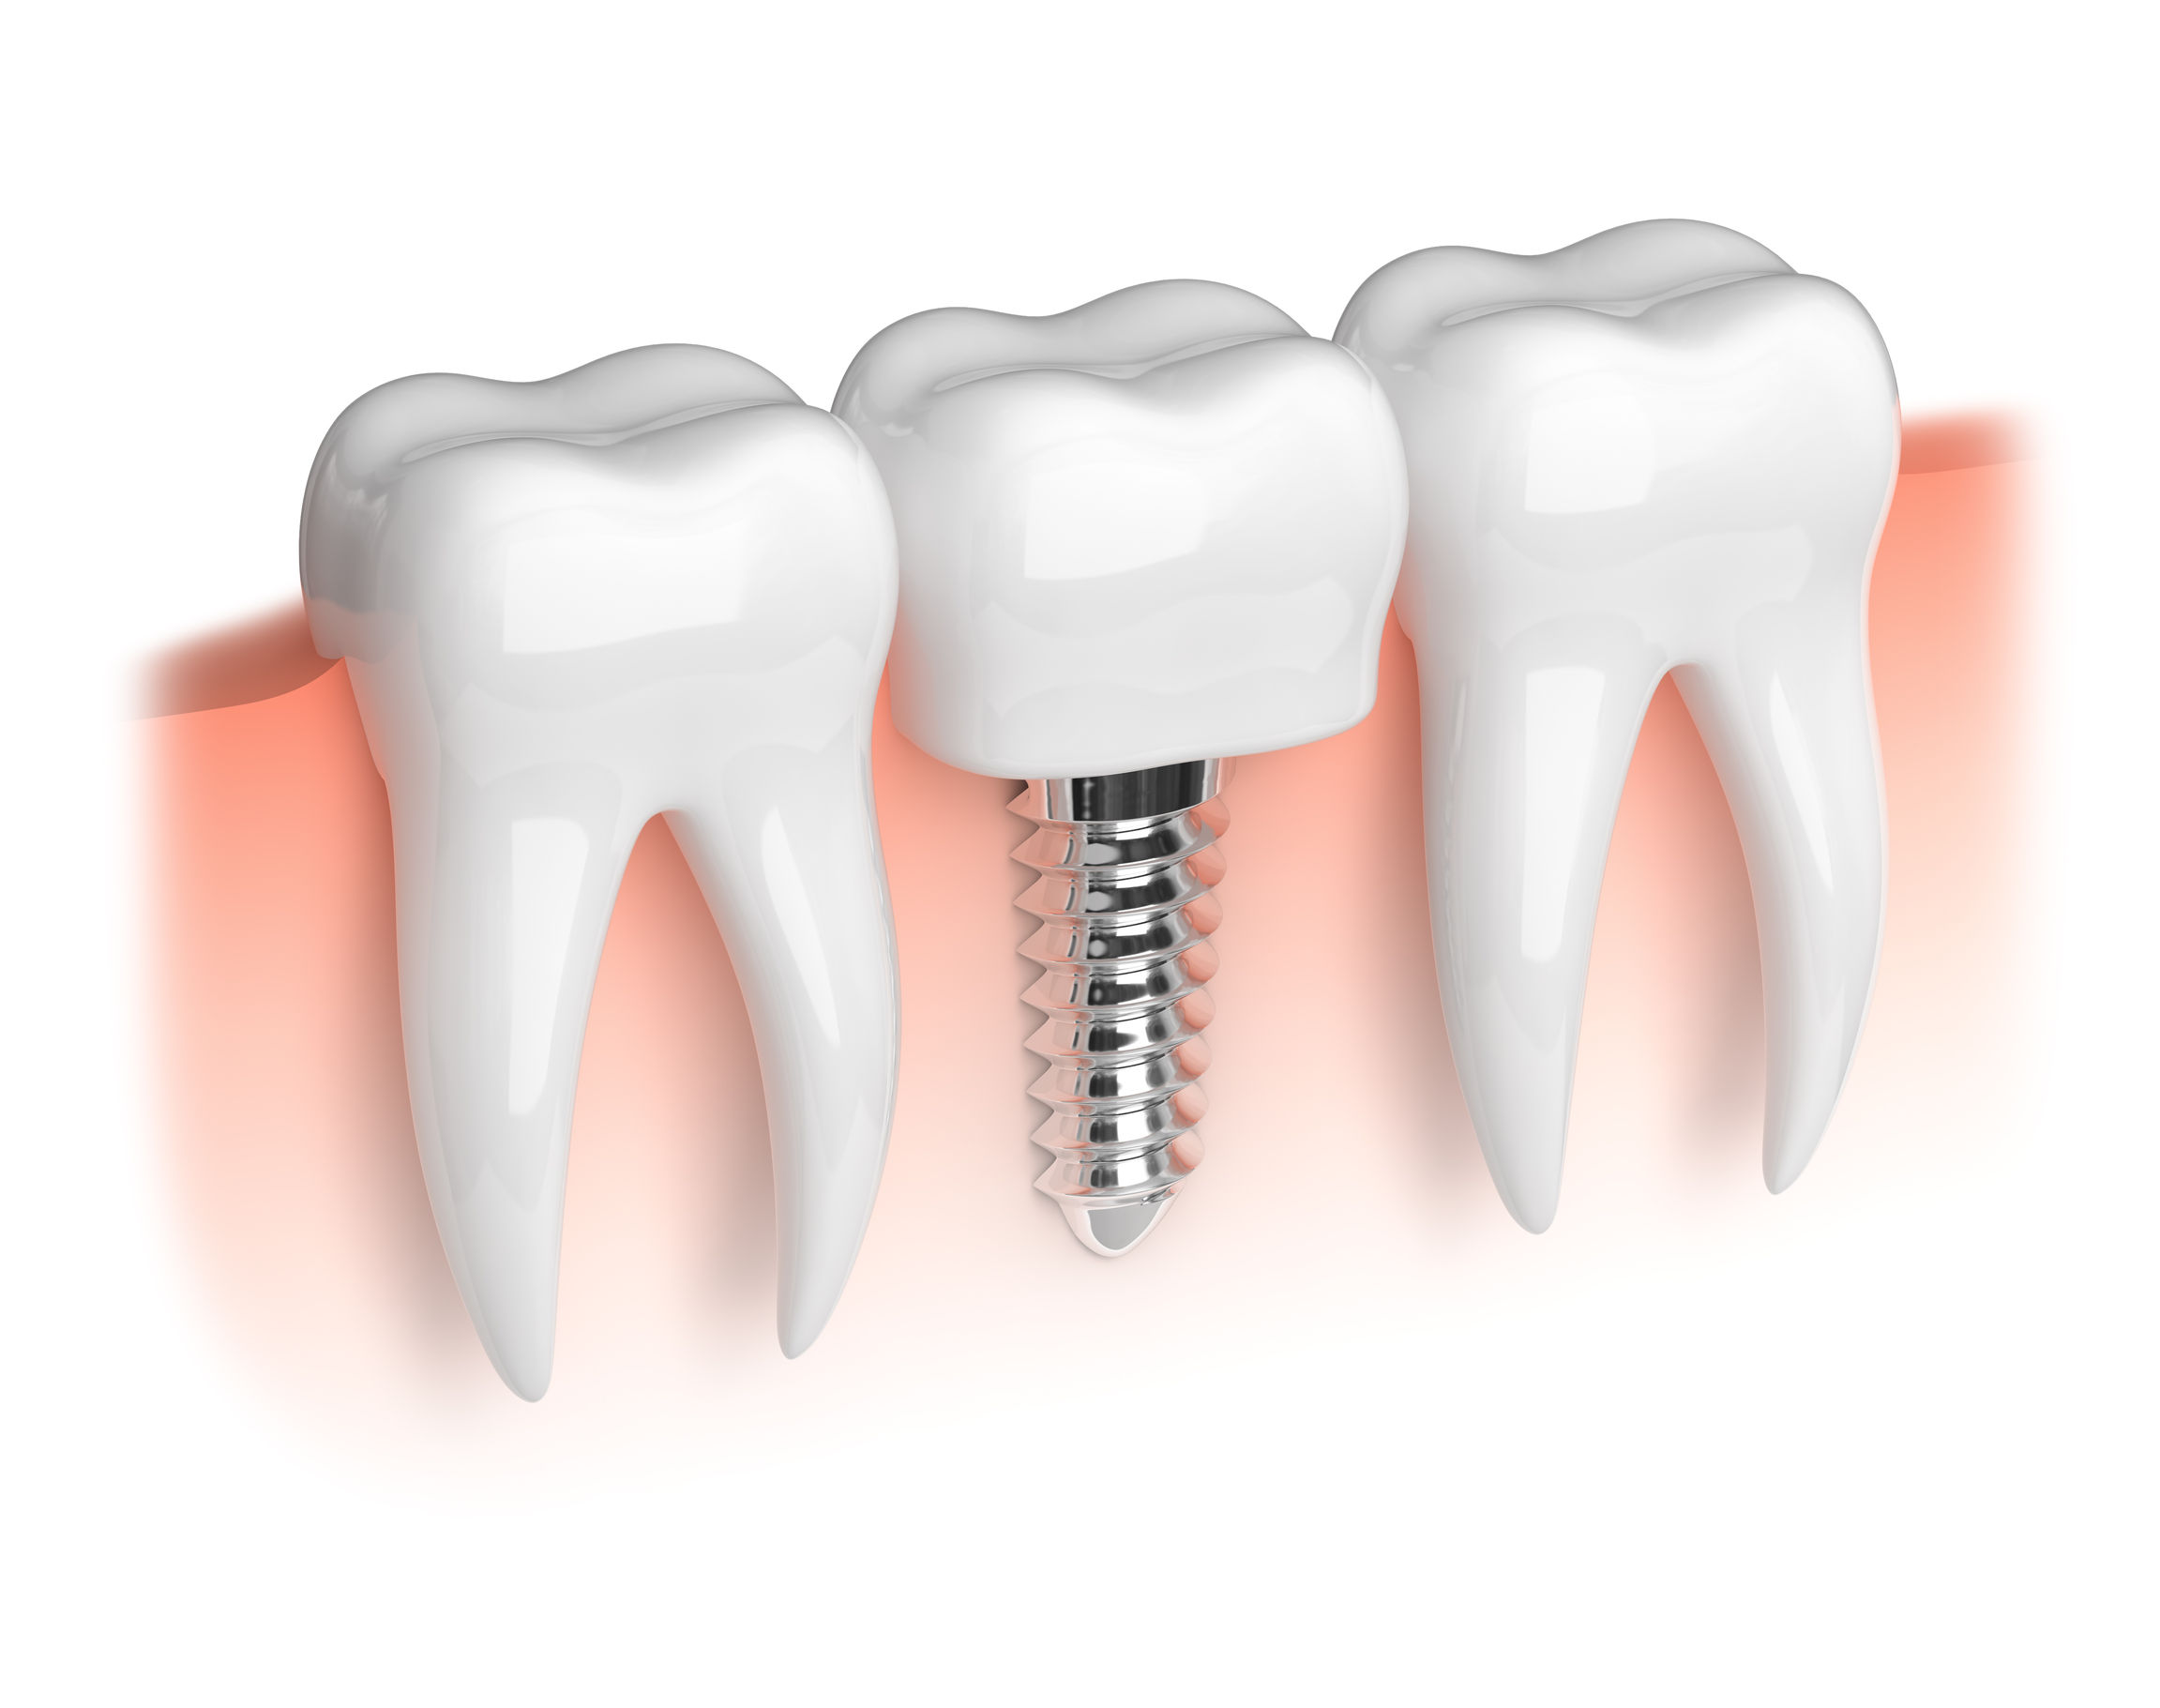 Where can I find dental implants in West Windsor?